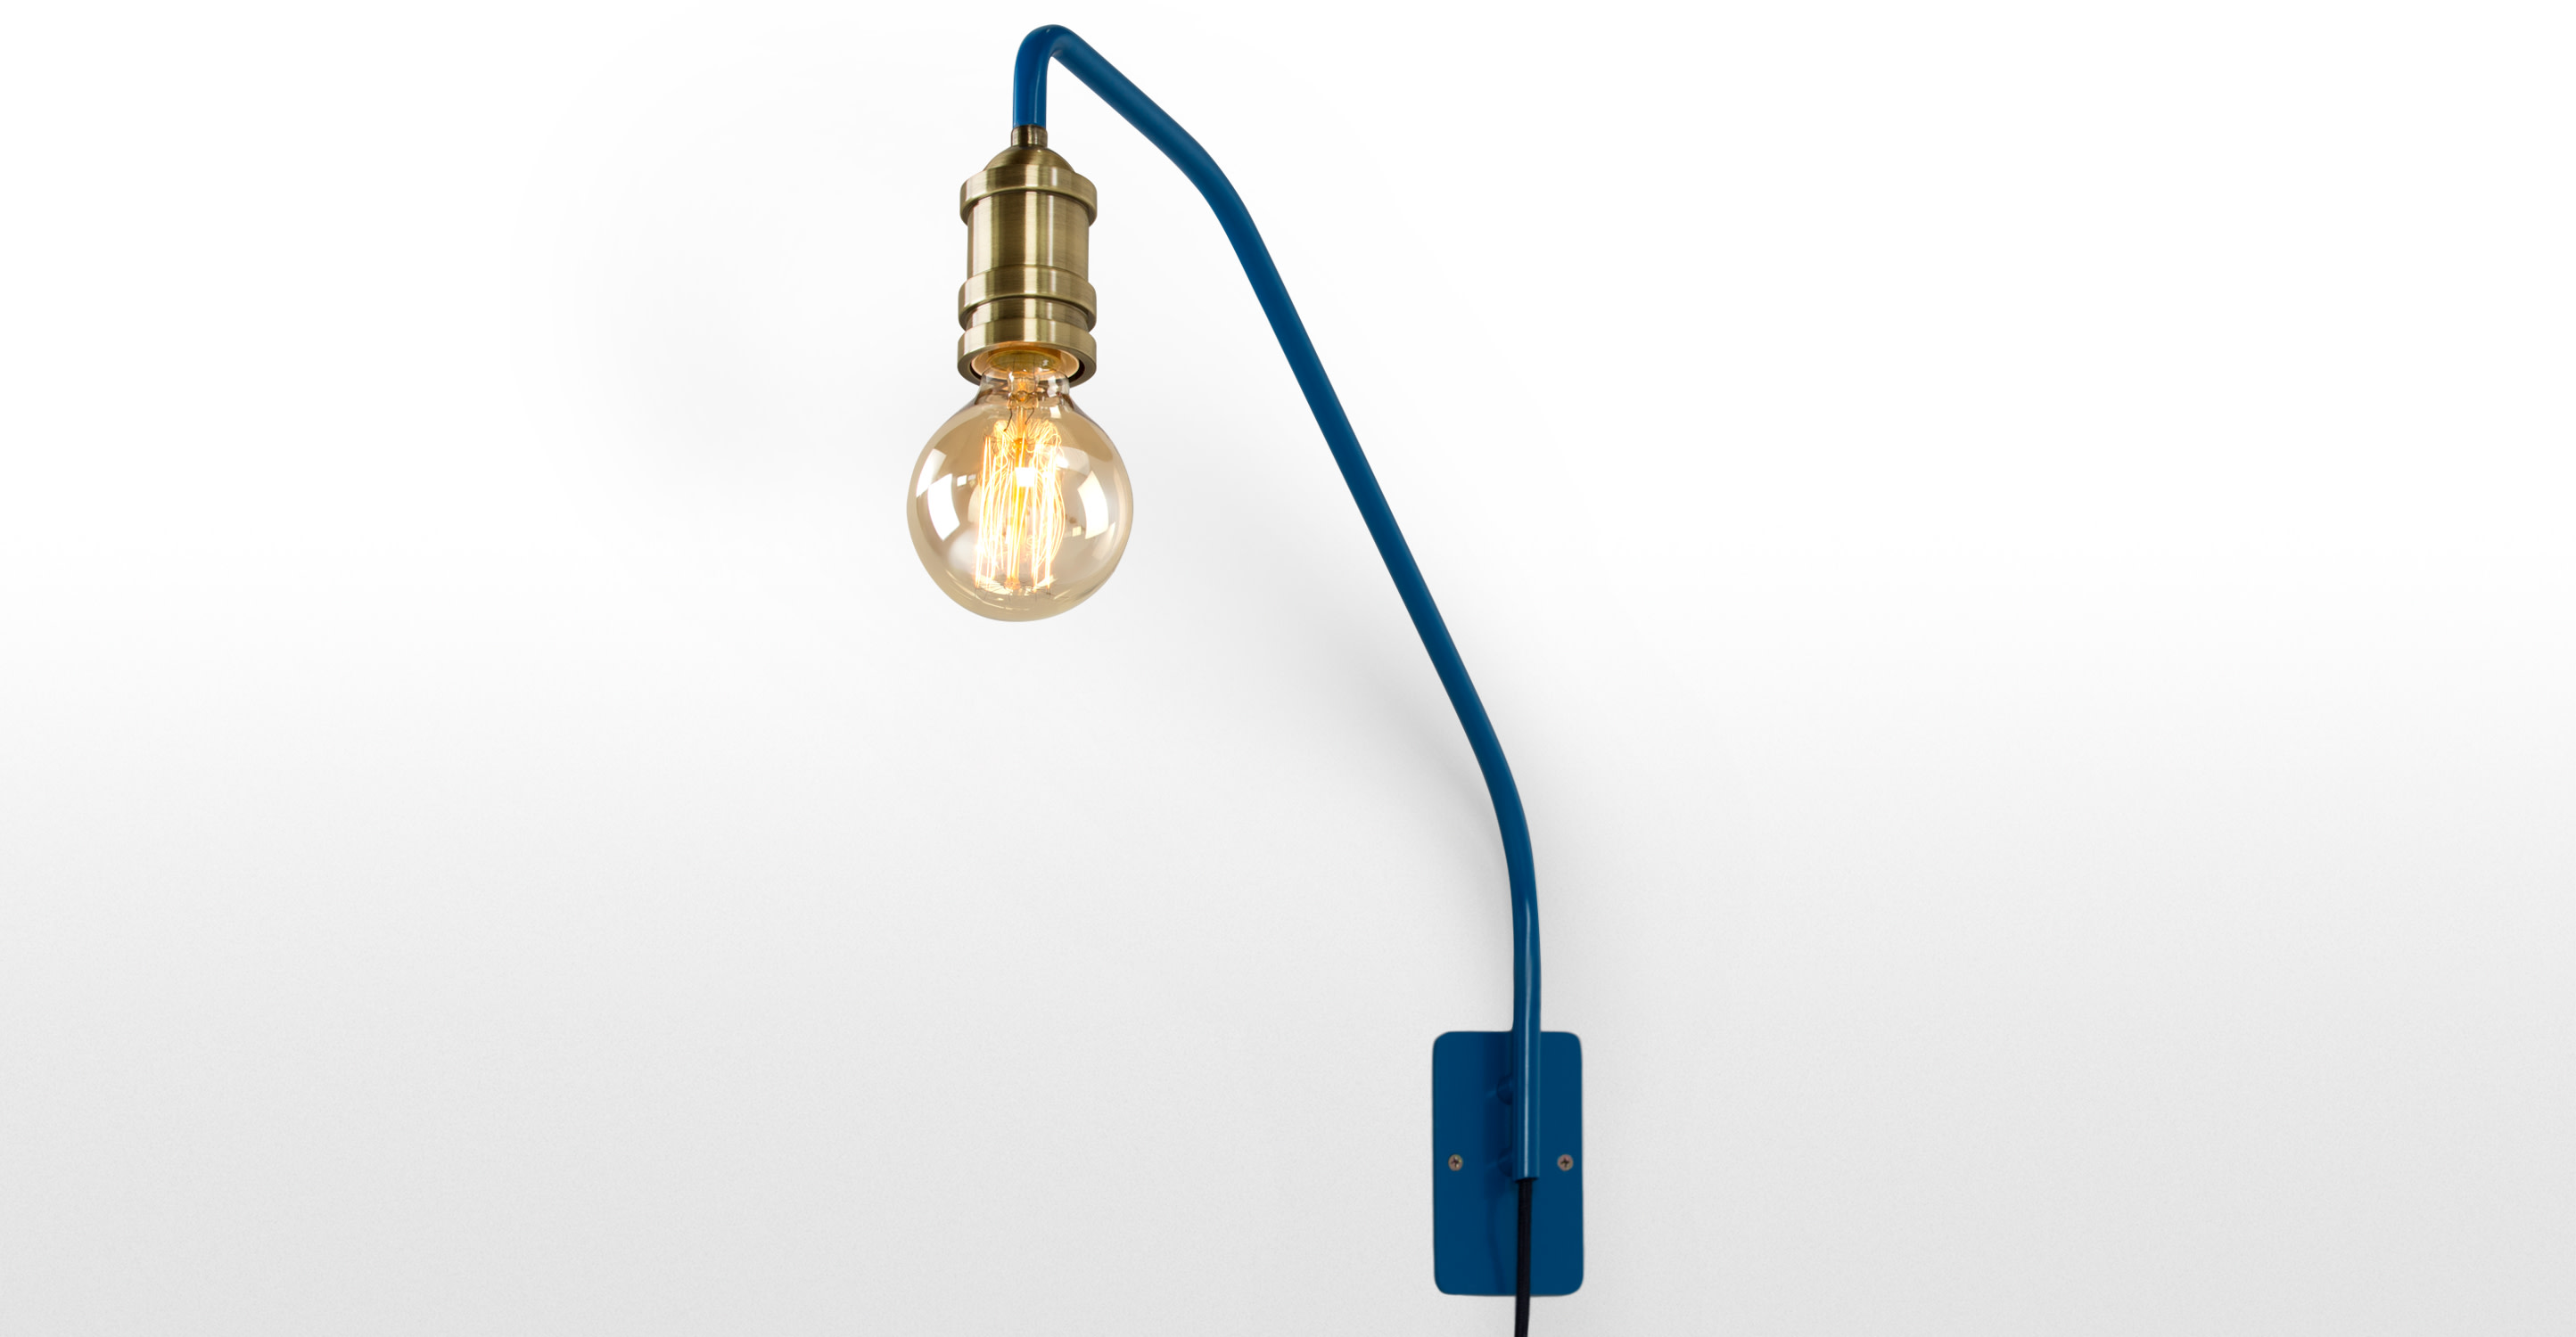 Starkey Wall Lamp Black And Brass : Starkey Wall Lamp, Blue and Brass made.com